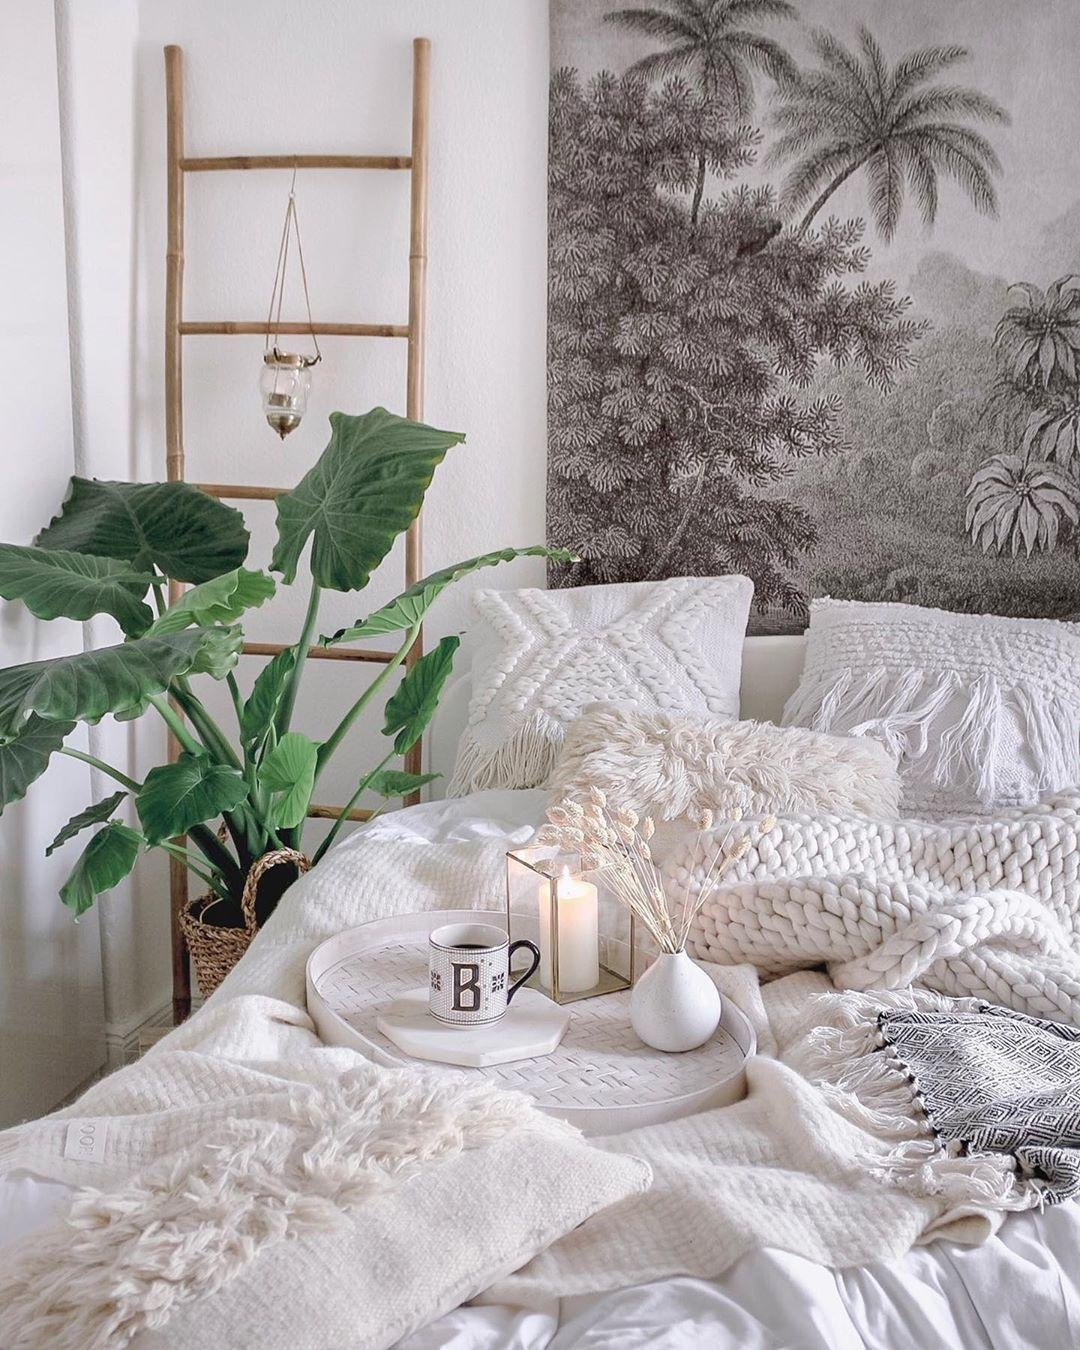 Easy like Monday morning! ✨